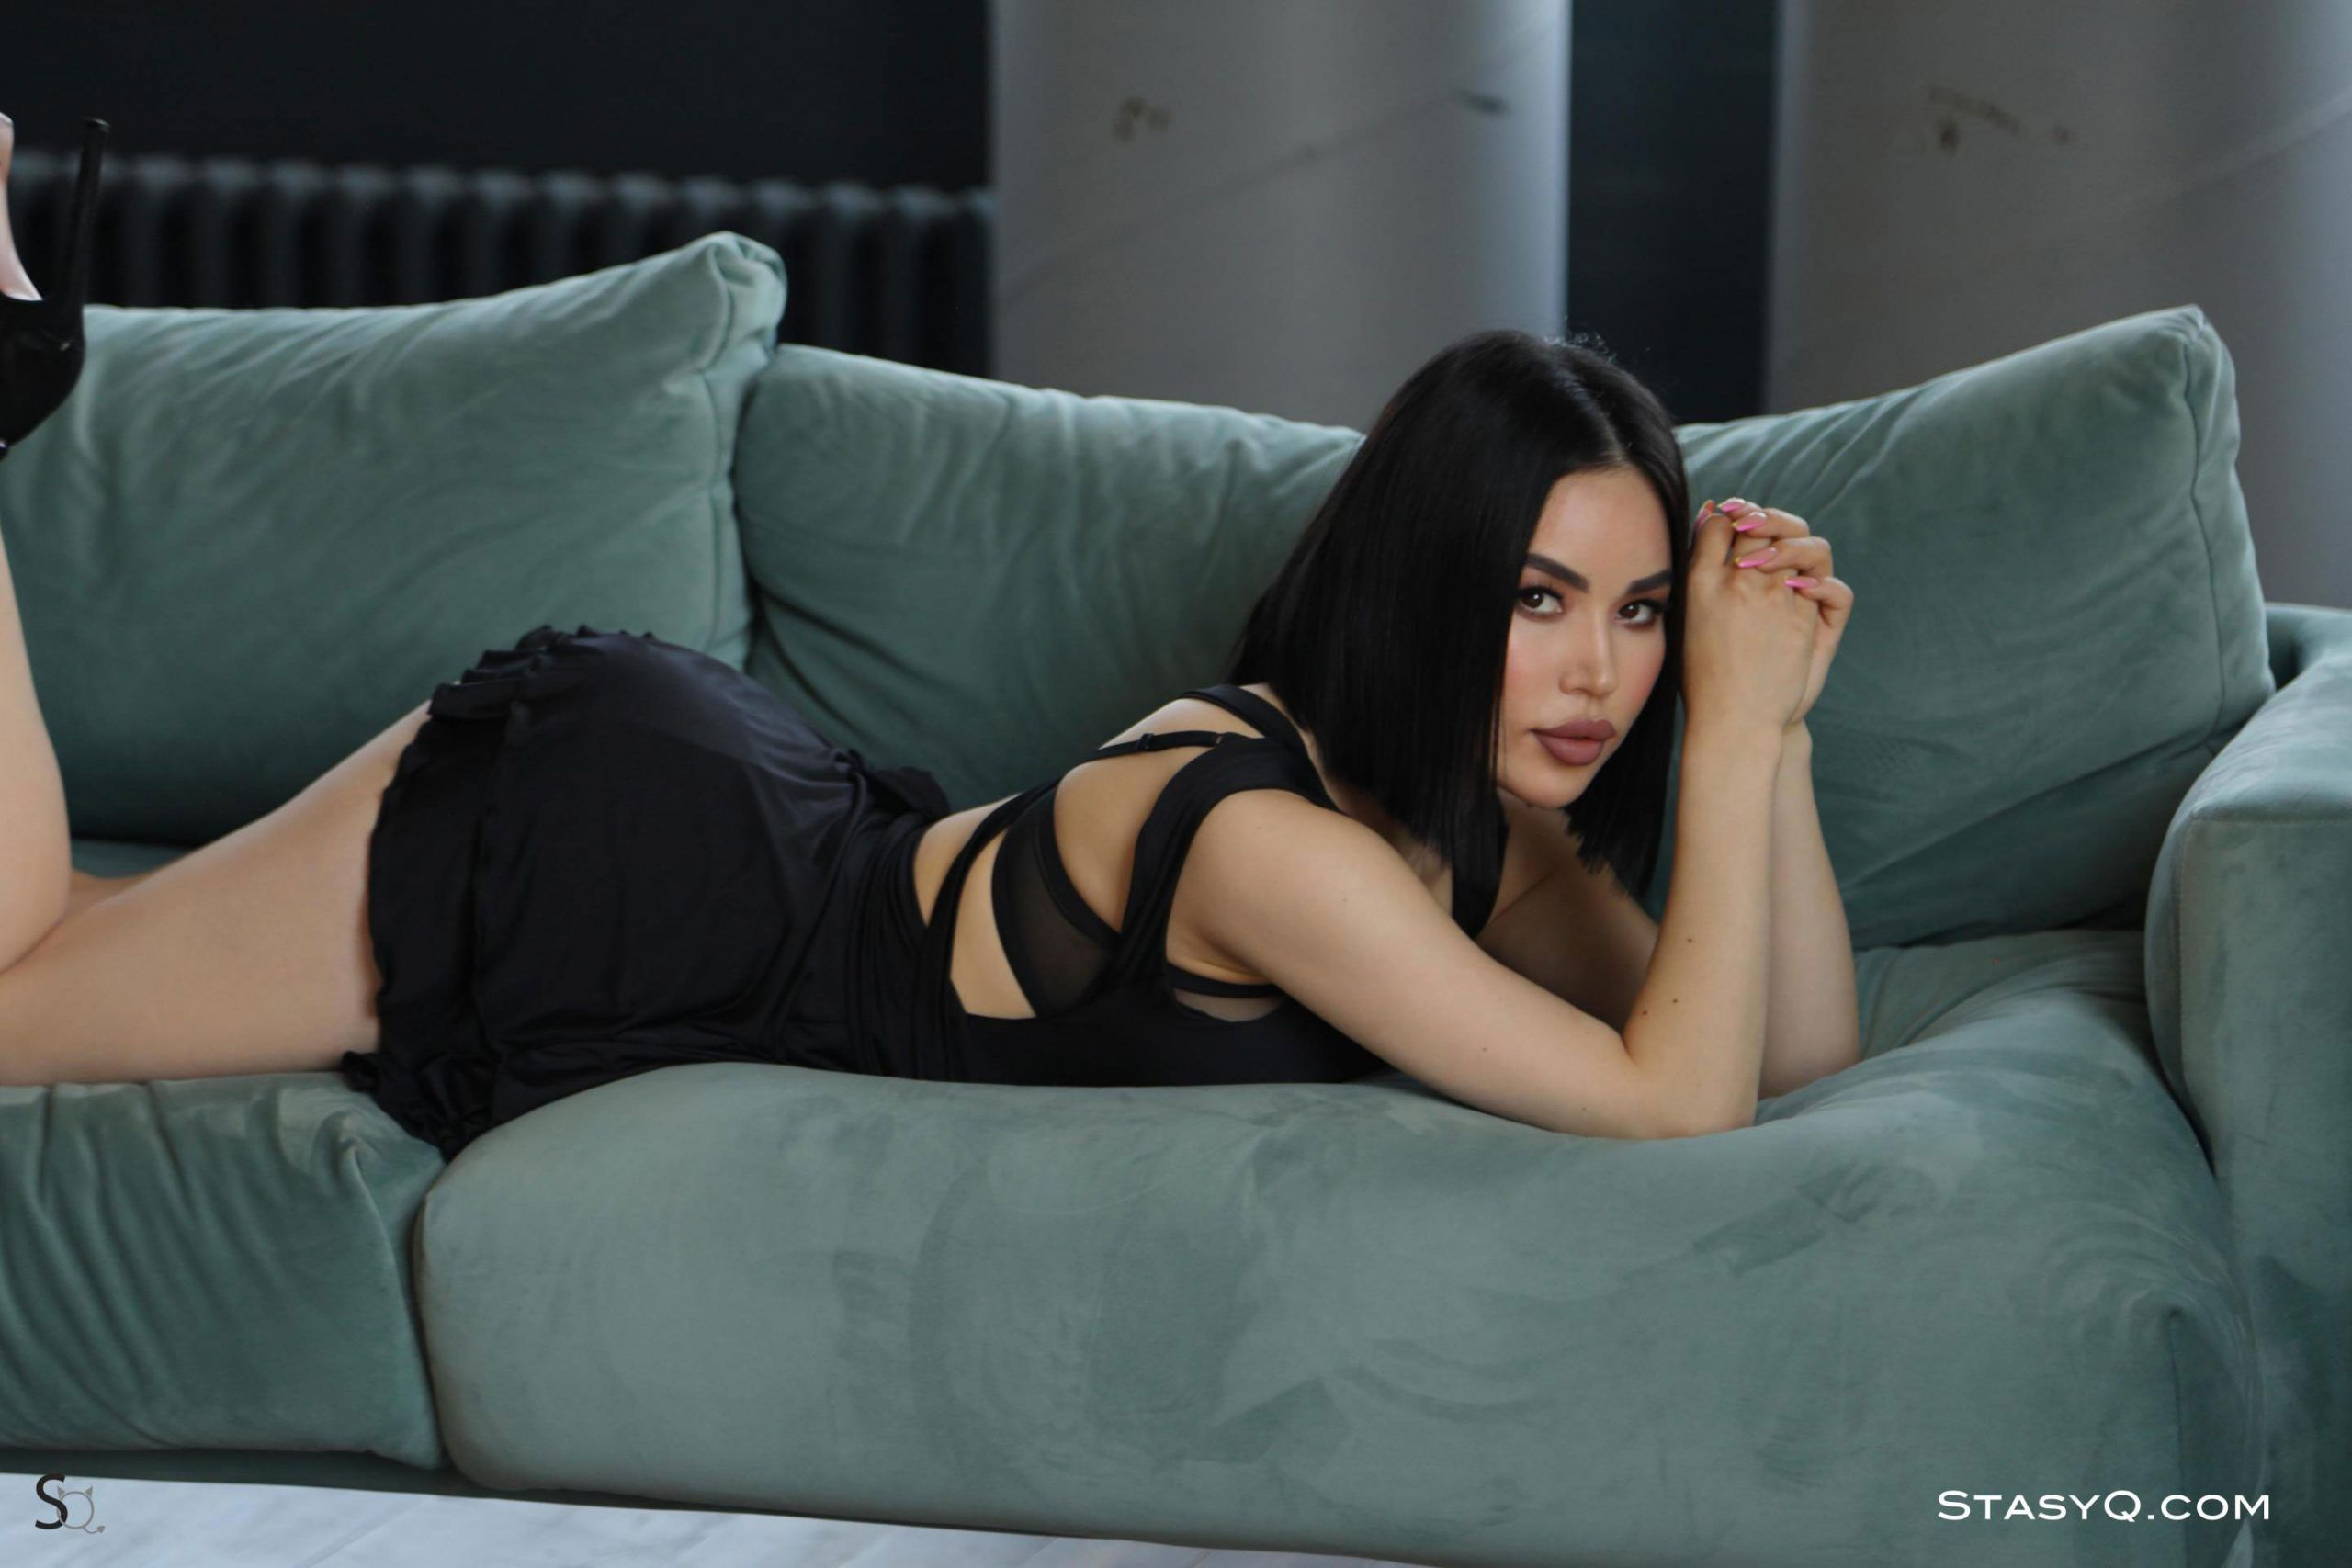 Babe AiculQ gives a stylish photo shoot for StasyQ | Daily Girls @ Female Update